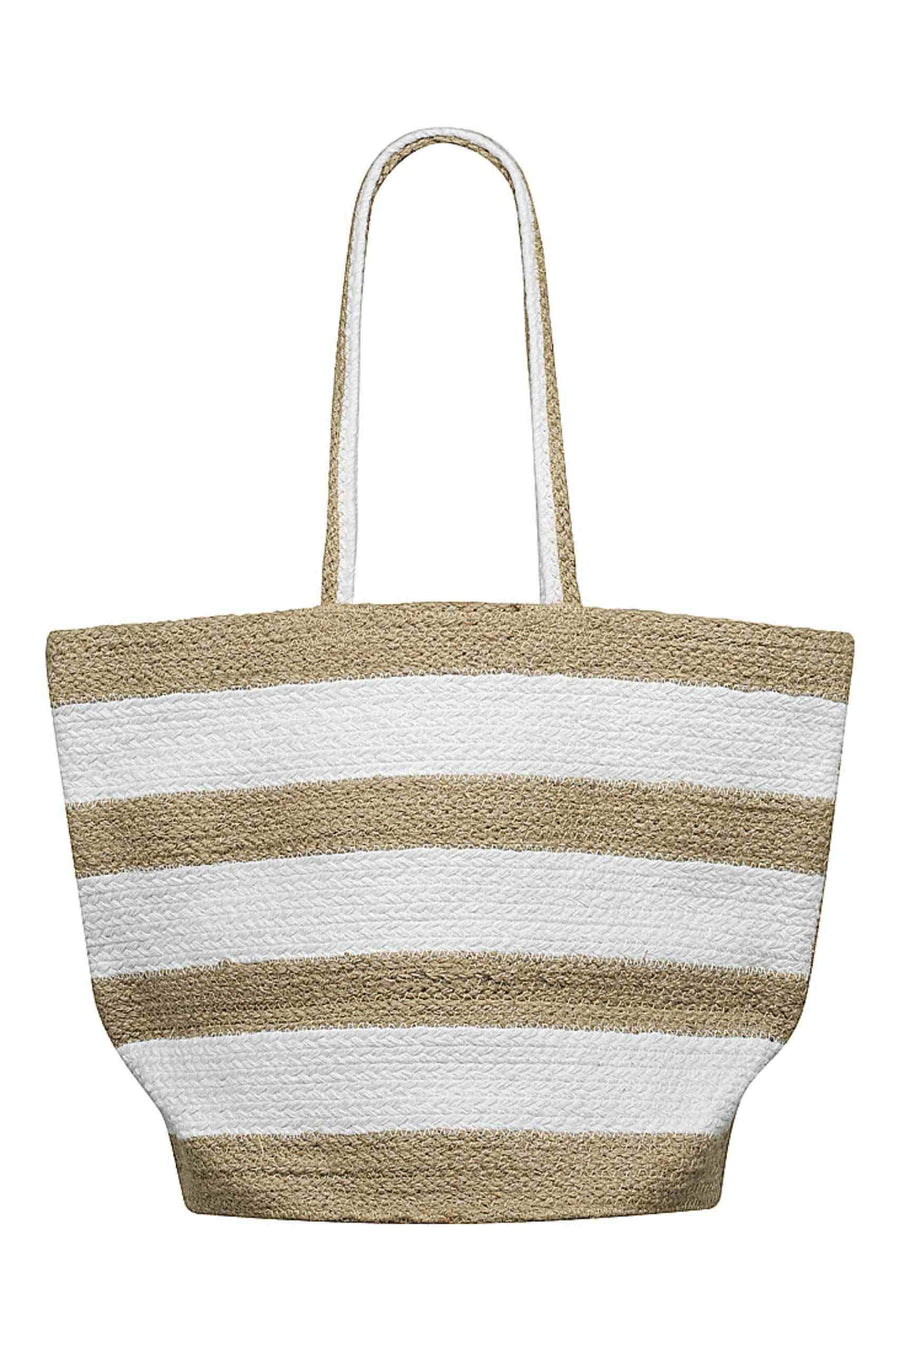 Beach Bag - White and Natural Stripe Capriosca Swimwear Australia